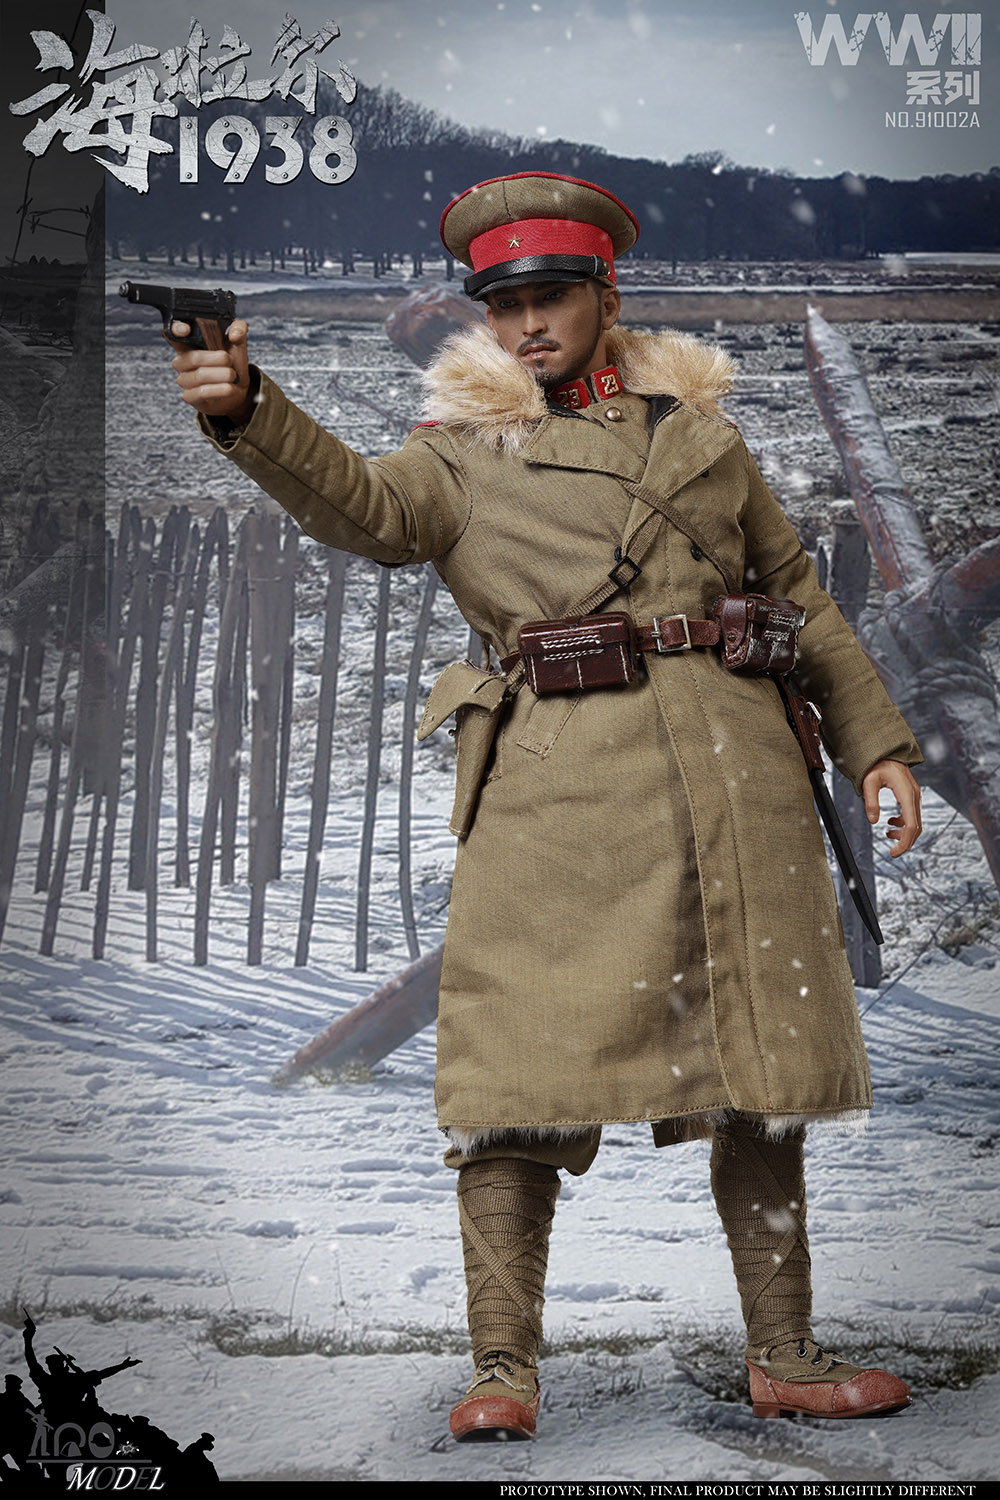 japanese - NEW PRODUCT: IQO Model: 1/6 WWII Series 1938 Hailar Scout (NO.91002A, B) 22050610